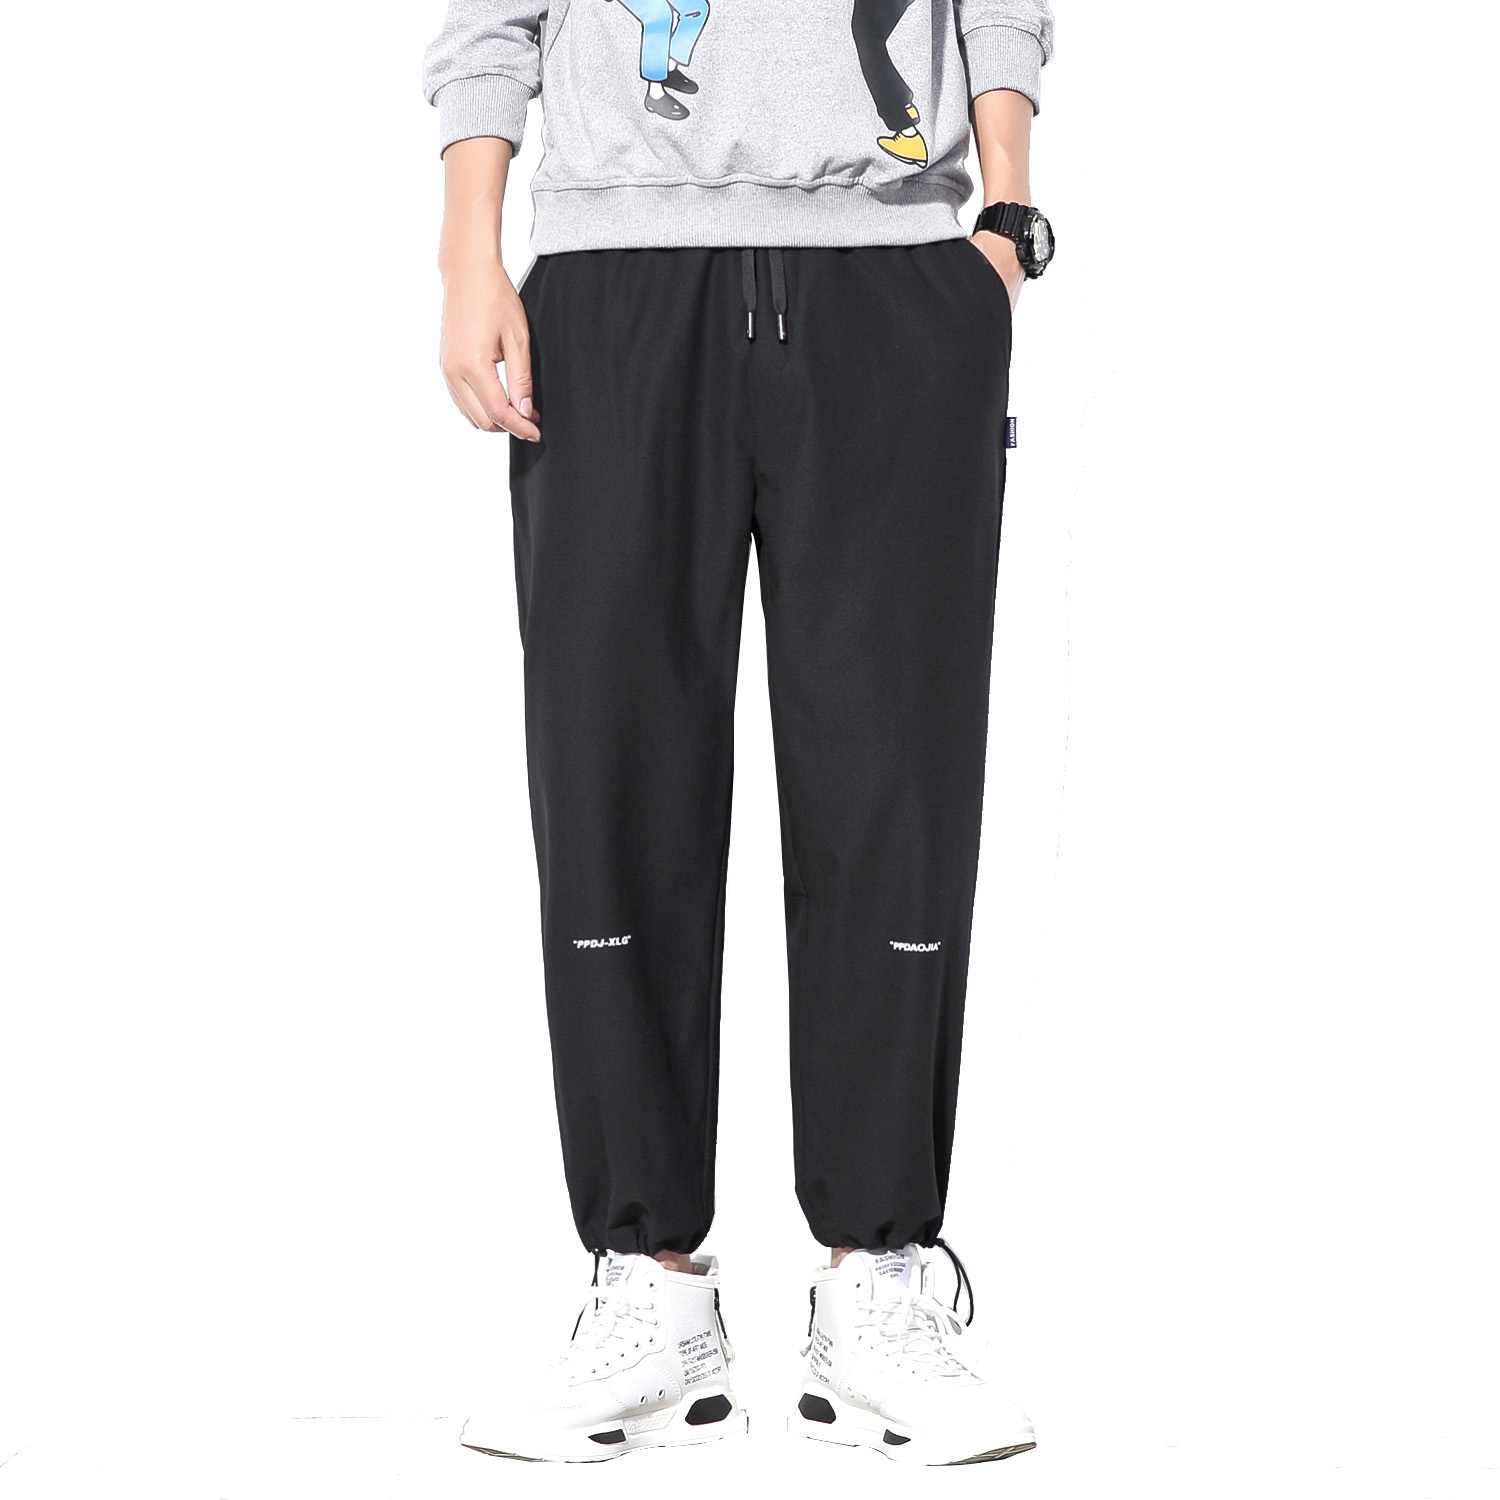 FAVOCENT Harem Pants Trousers Jogger-Pockets Cargo Streetwear Loose Men's Summer Casual